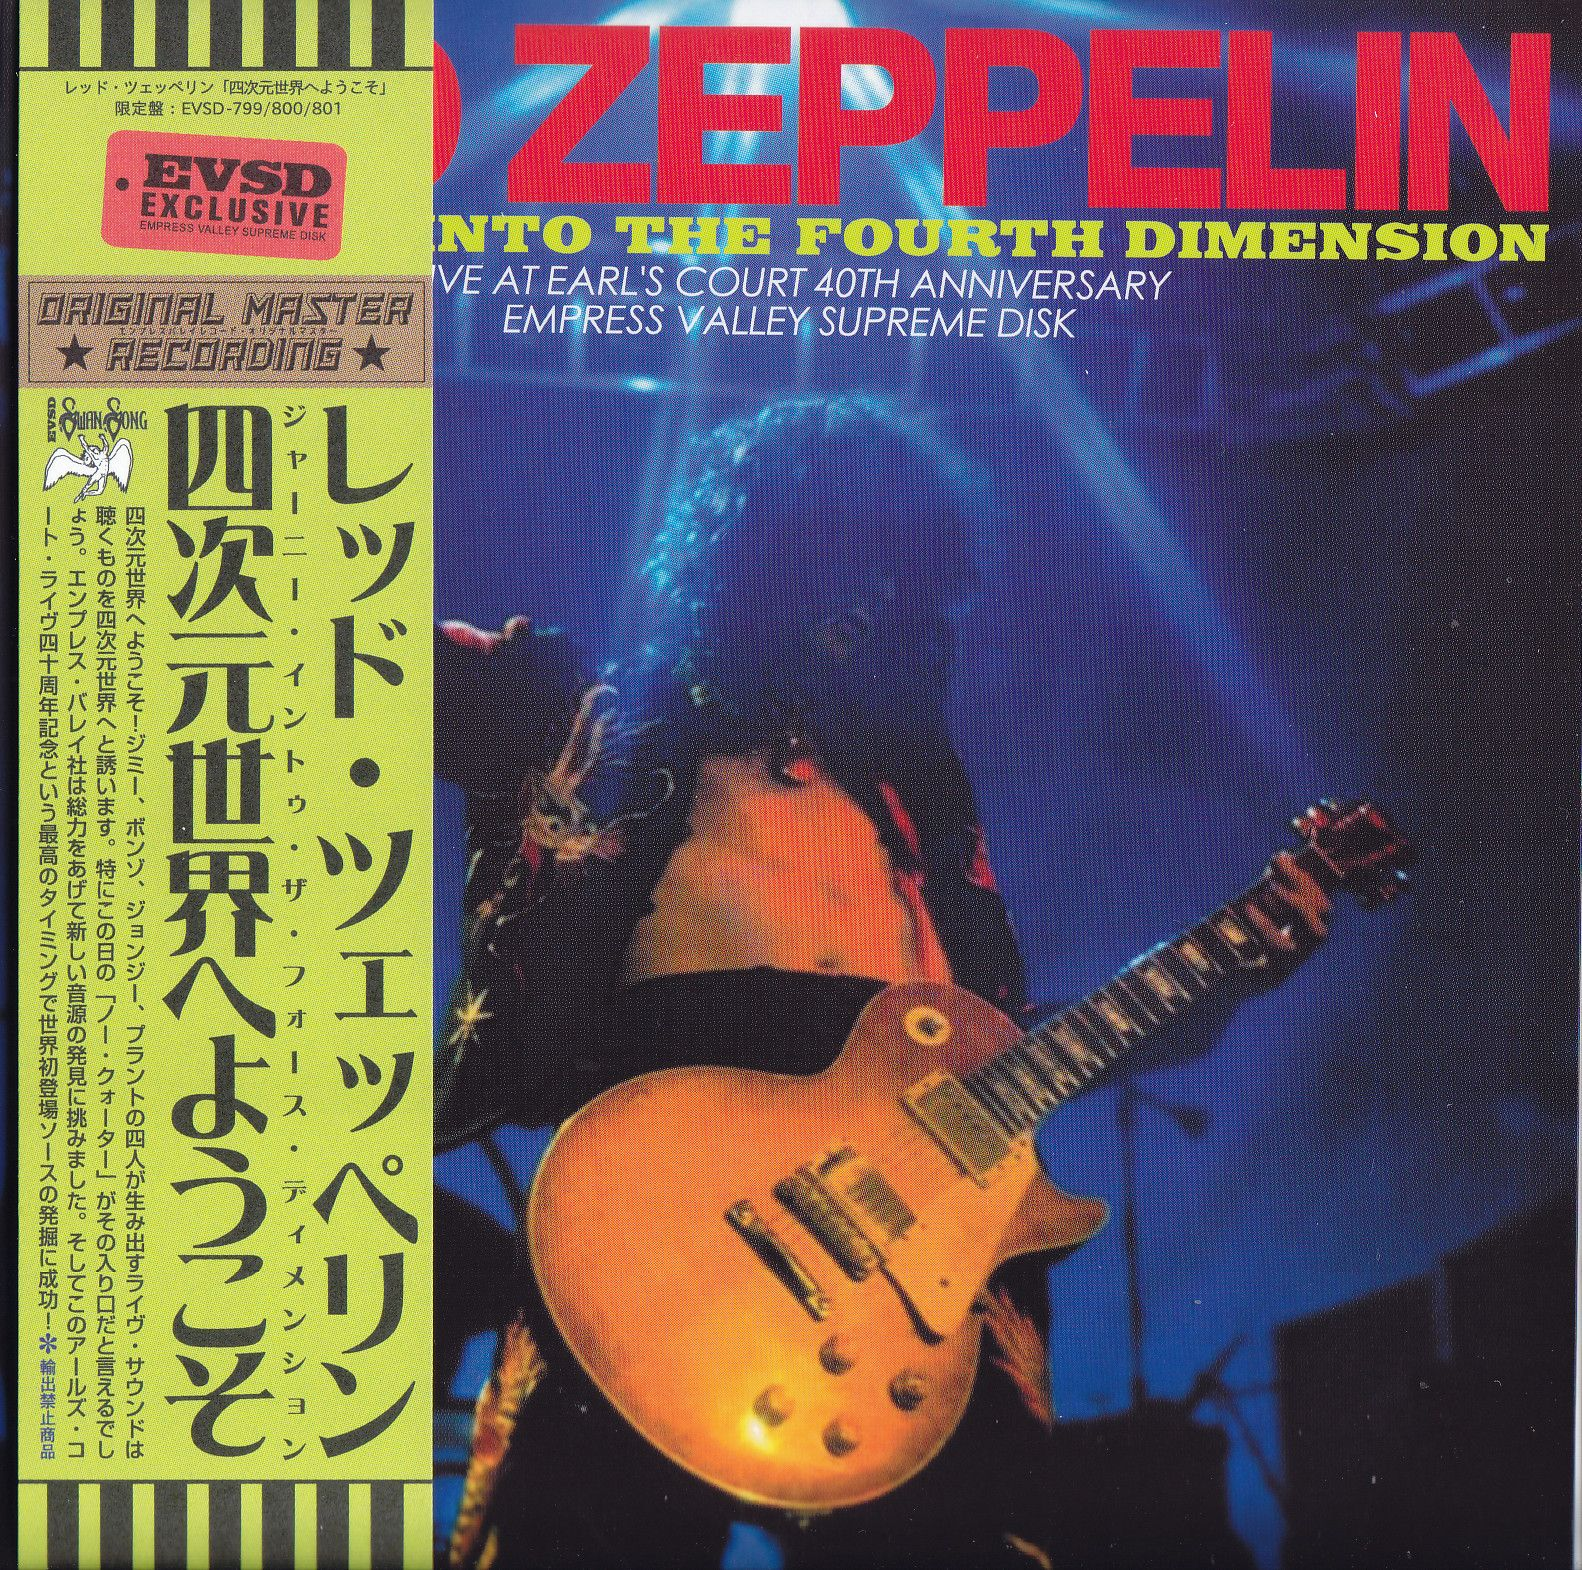 Led Zeppelin - Black Dragon With Blue Axe (6CD Box Set) - Earls